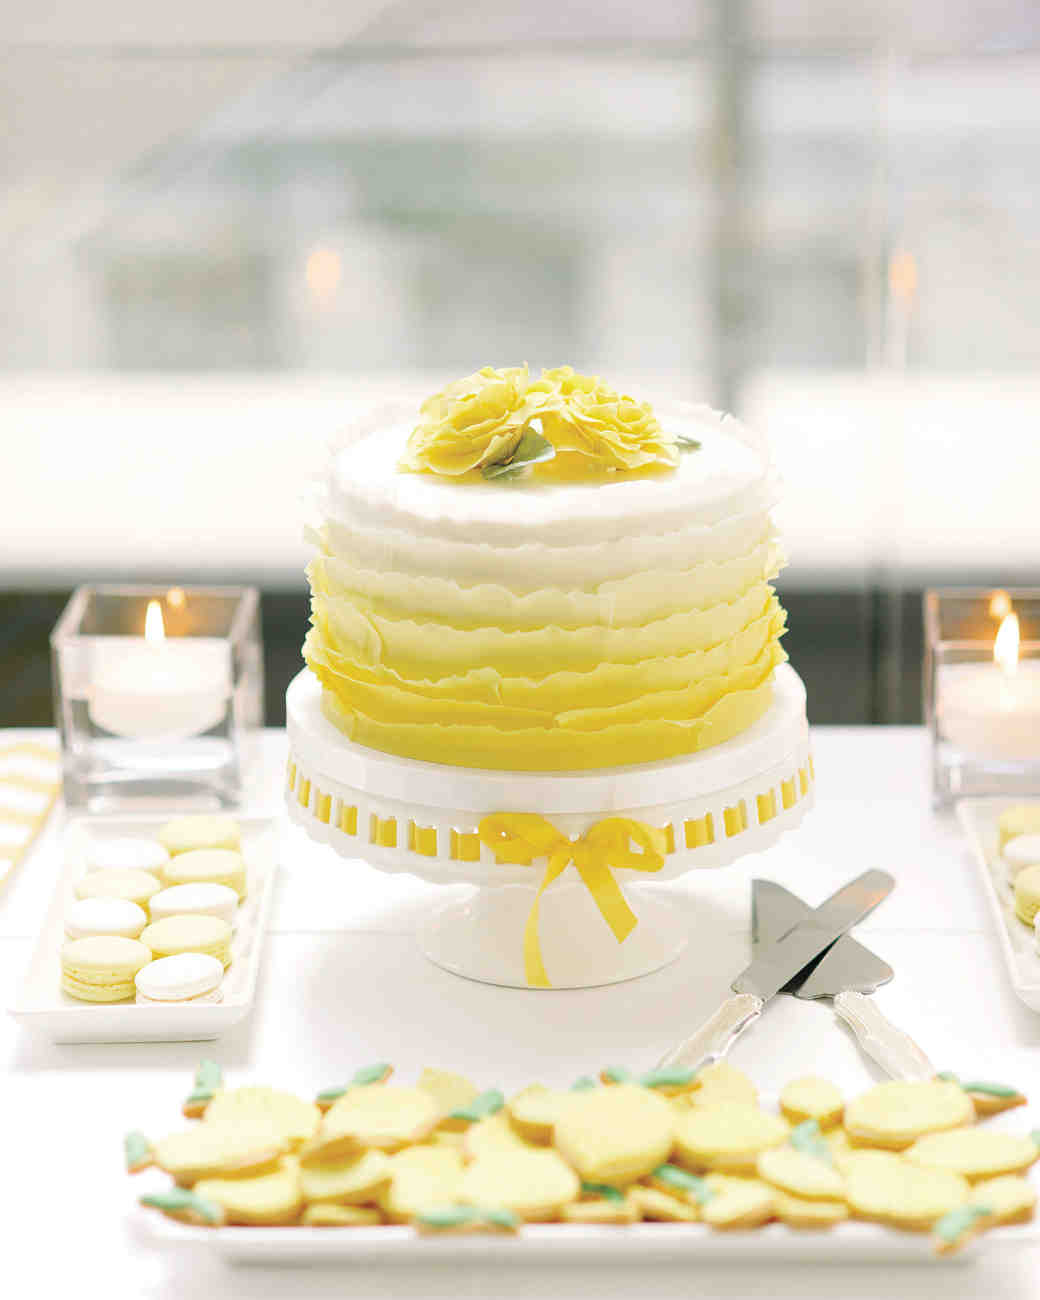 yellow cake design simple small house designwedding cakes with sugar flowers that look incredibly real marthawedding cakes with sugar flowers that look